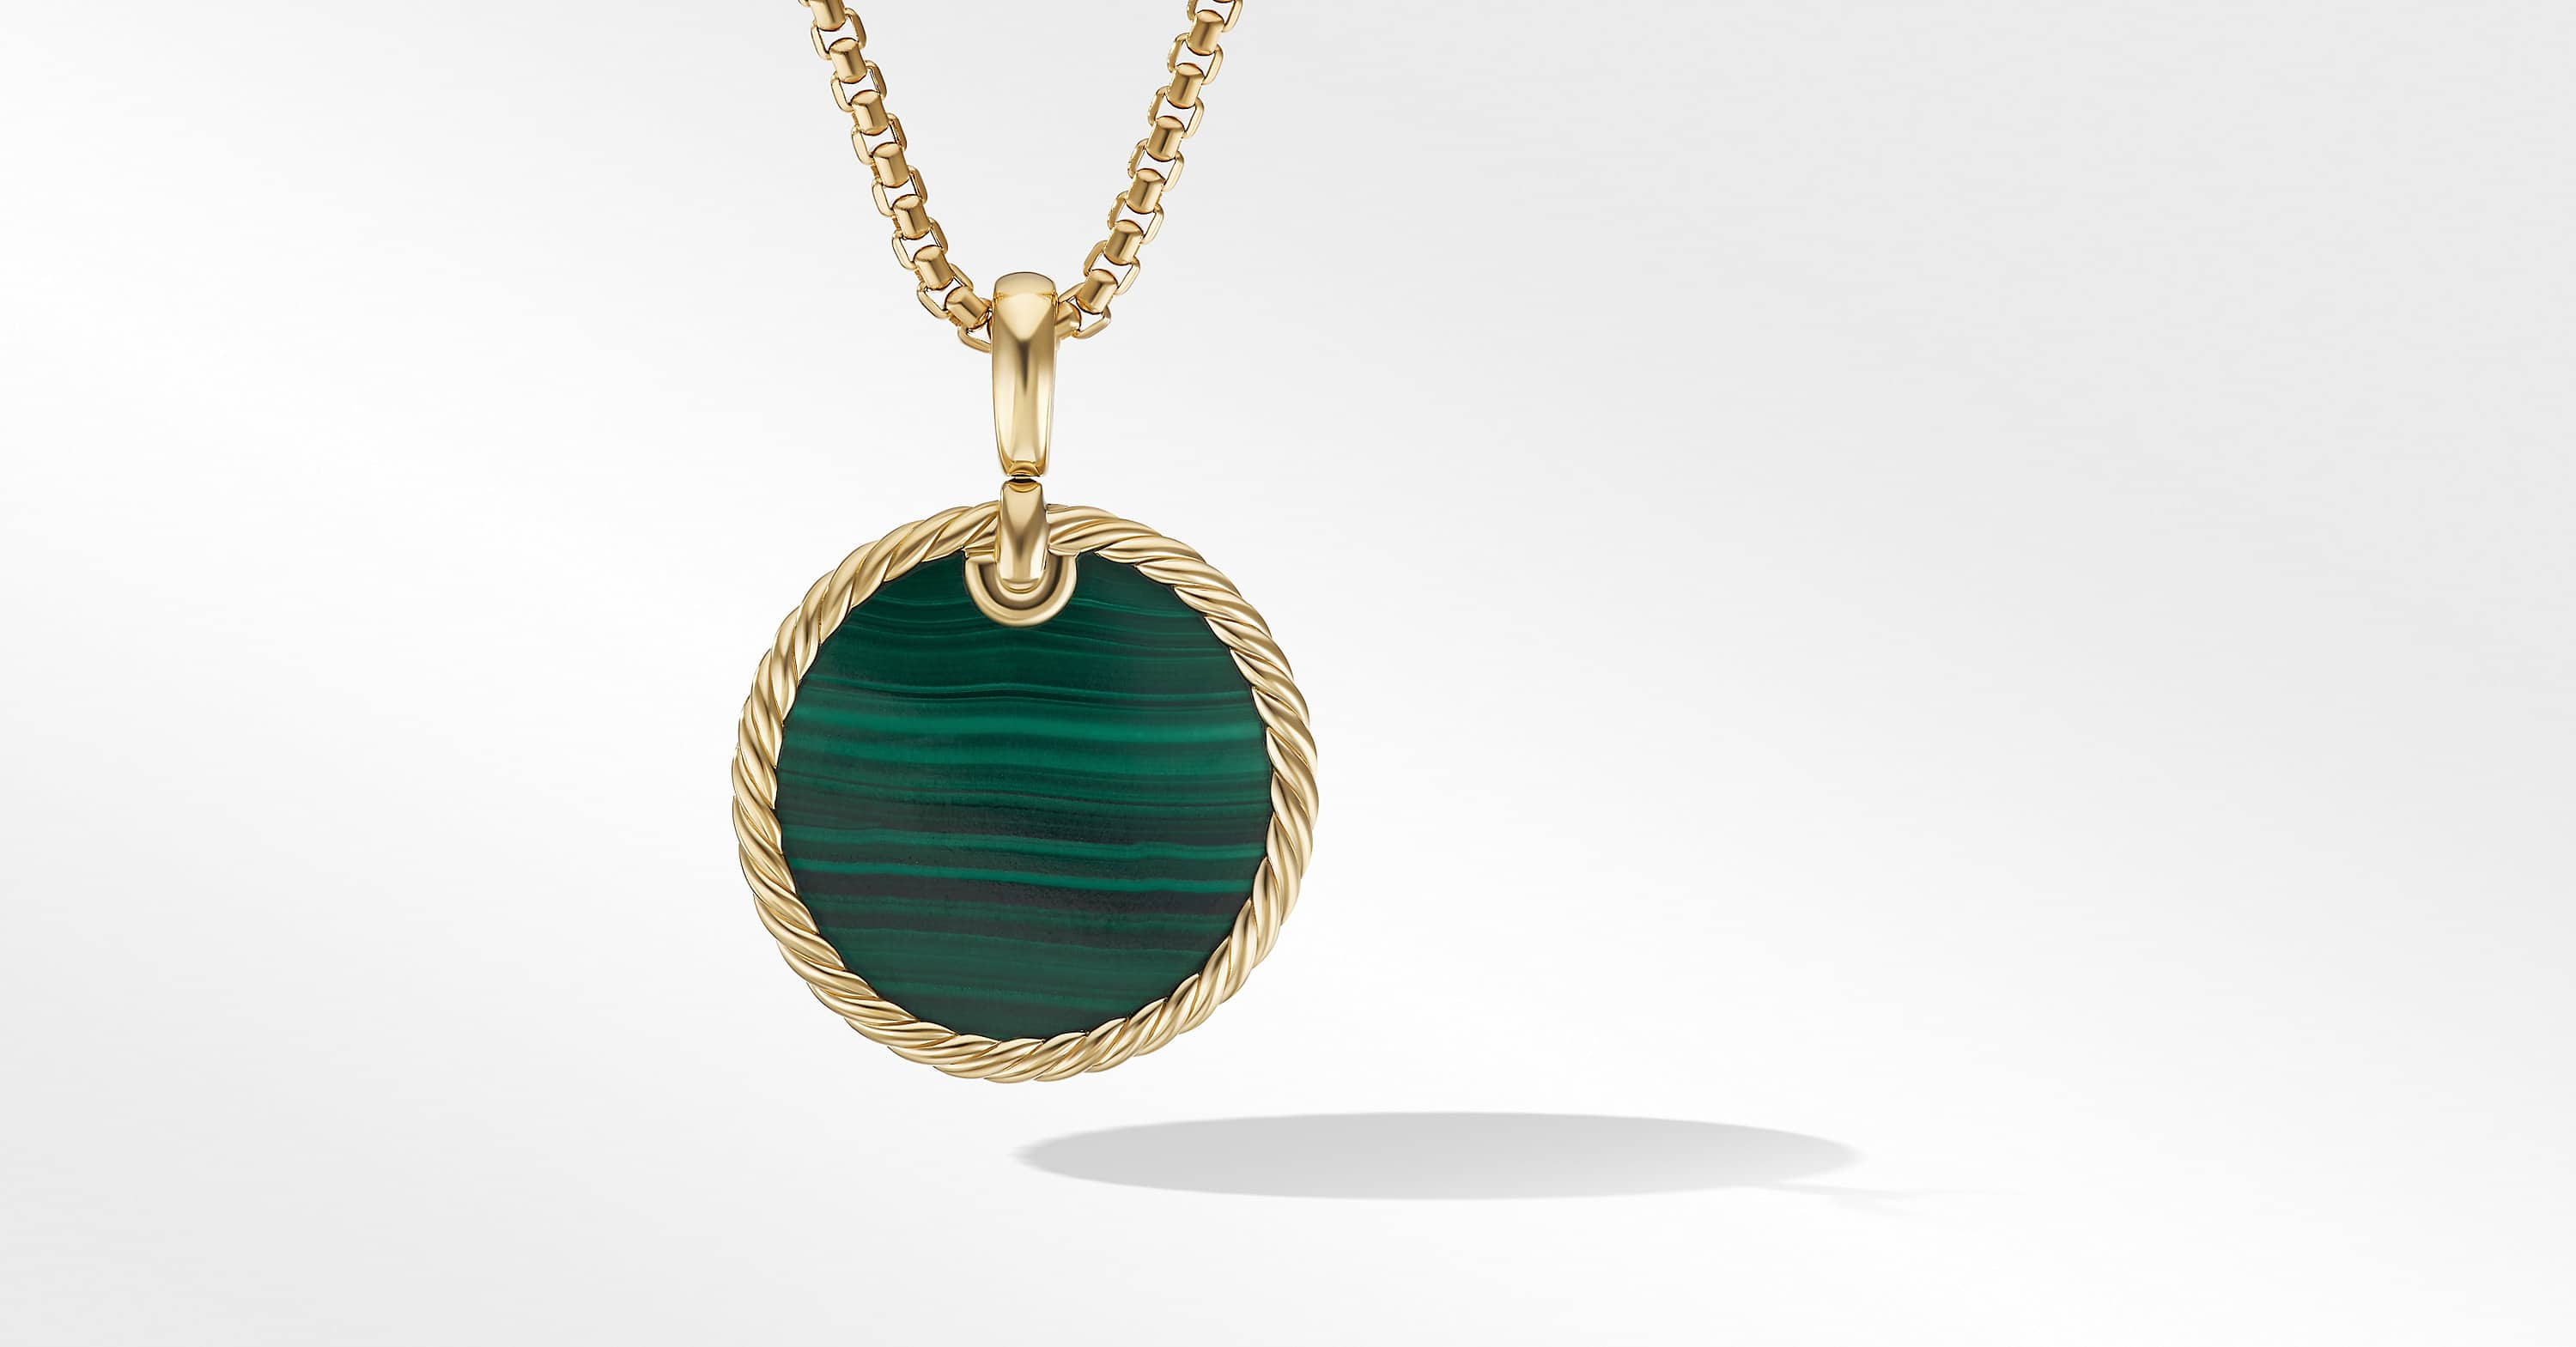 DY Elements Disc Pendant in 18K Yellow Gold, 24mm